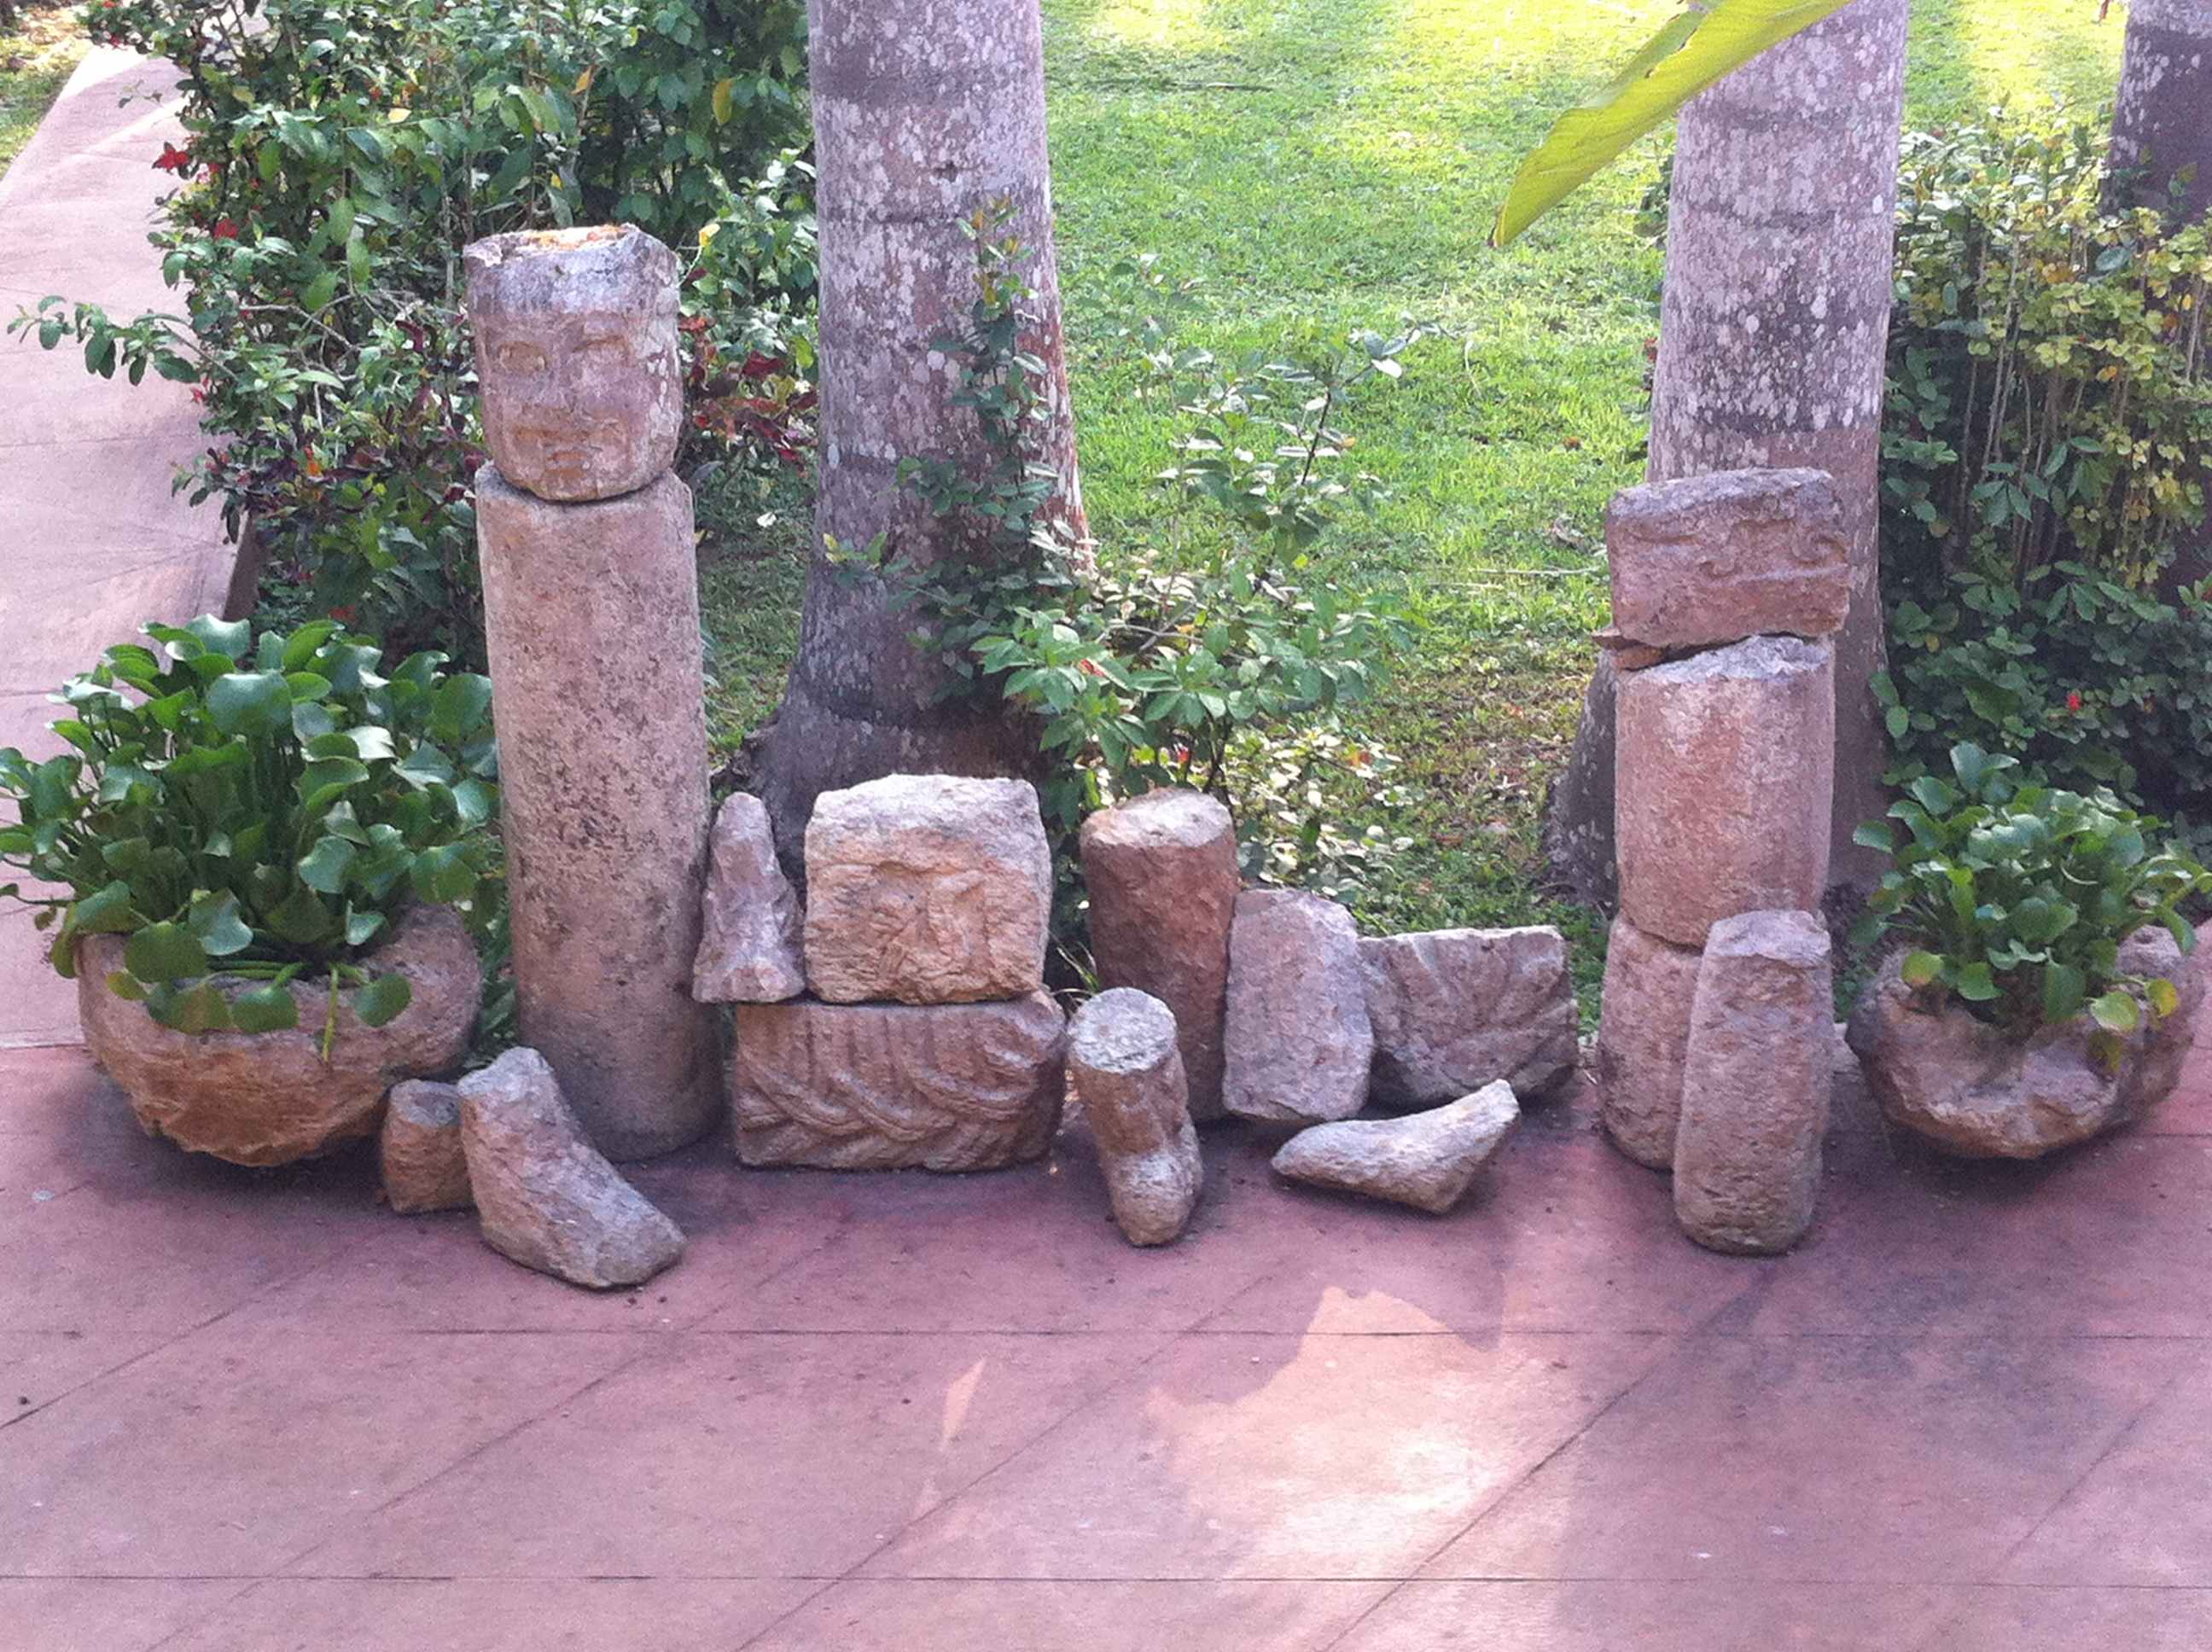 Sculpted stones from Chichén Itzá in the hacienda courtyard